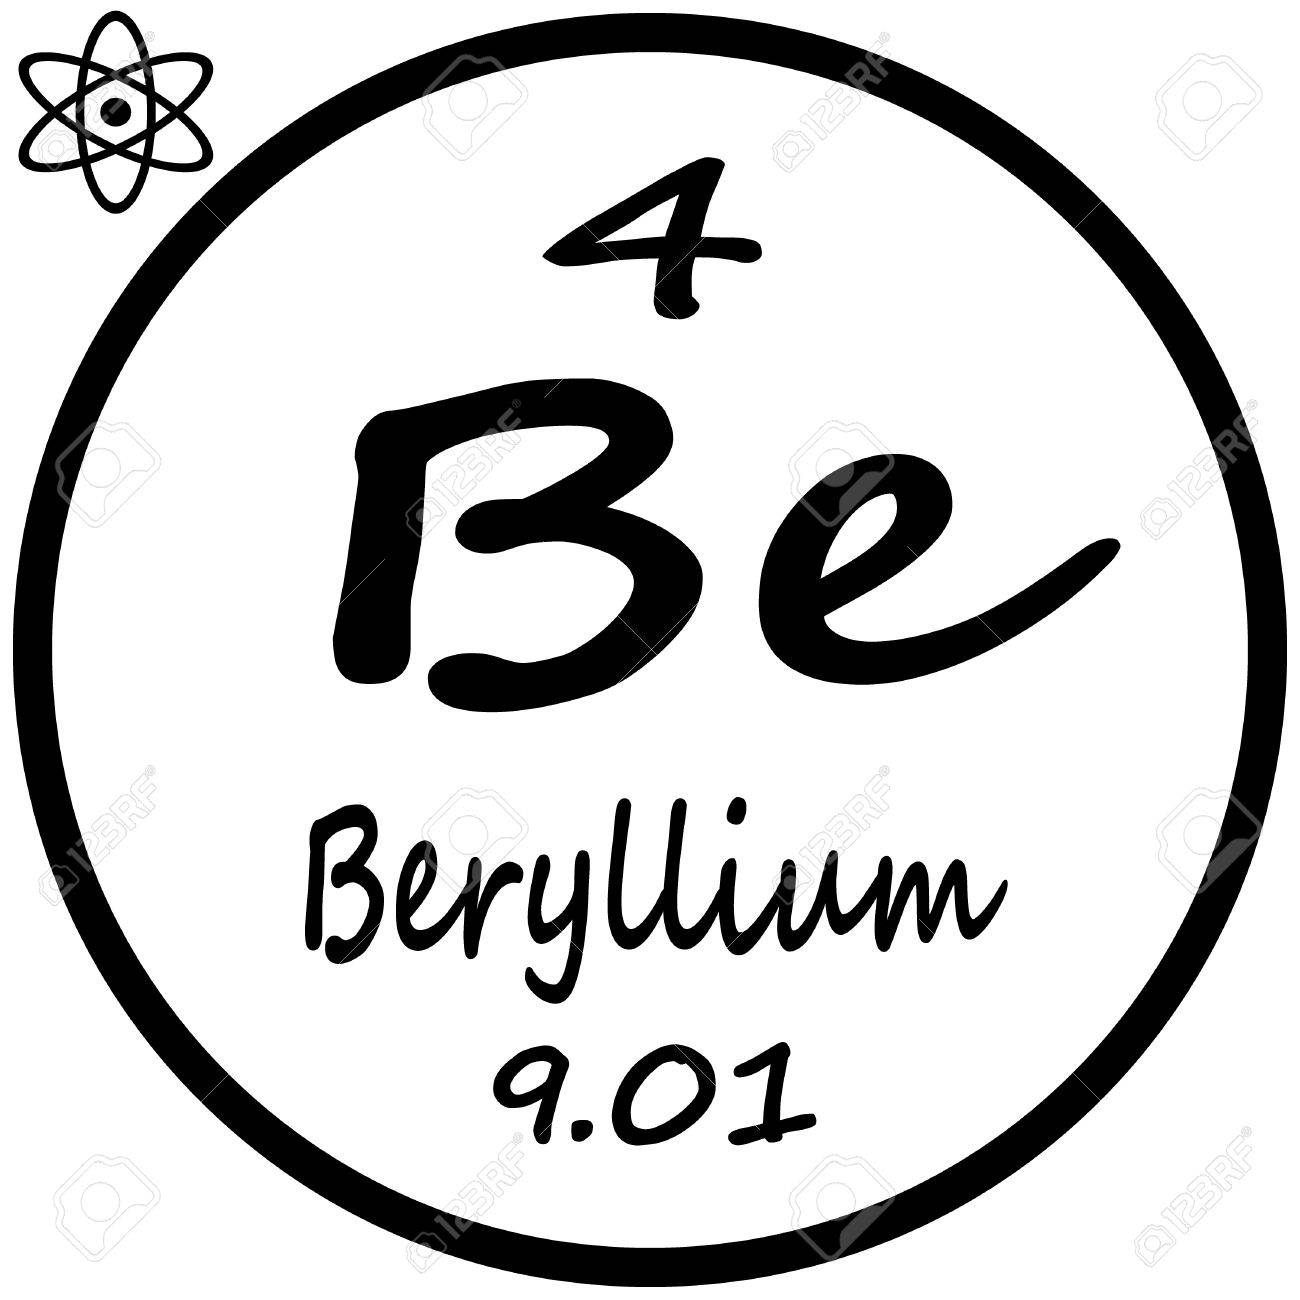 Periodic table of elements beryllium royalty free cliparts periodic table of elements beryllium stock vector 53482391 urtaz